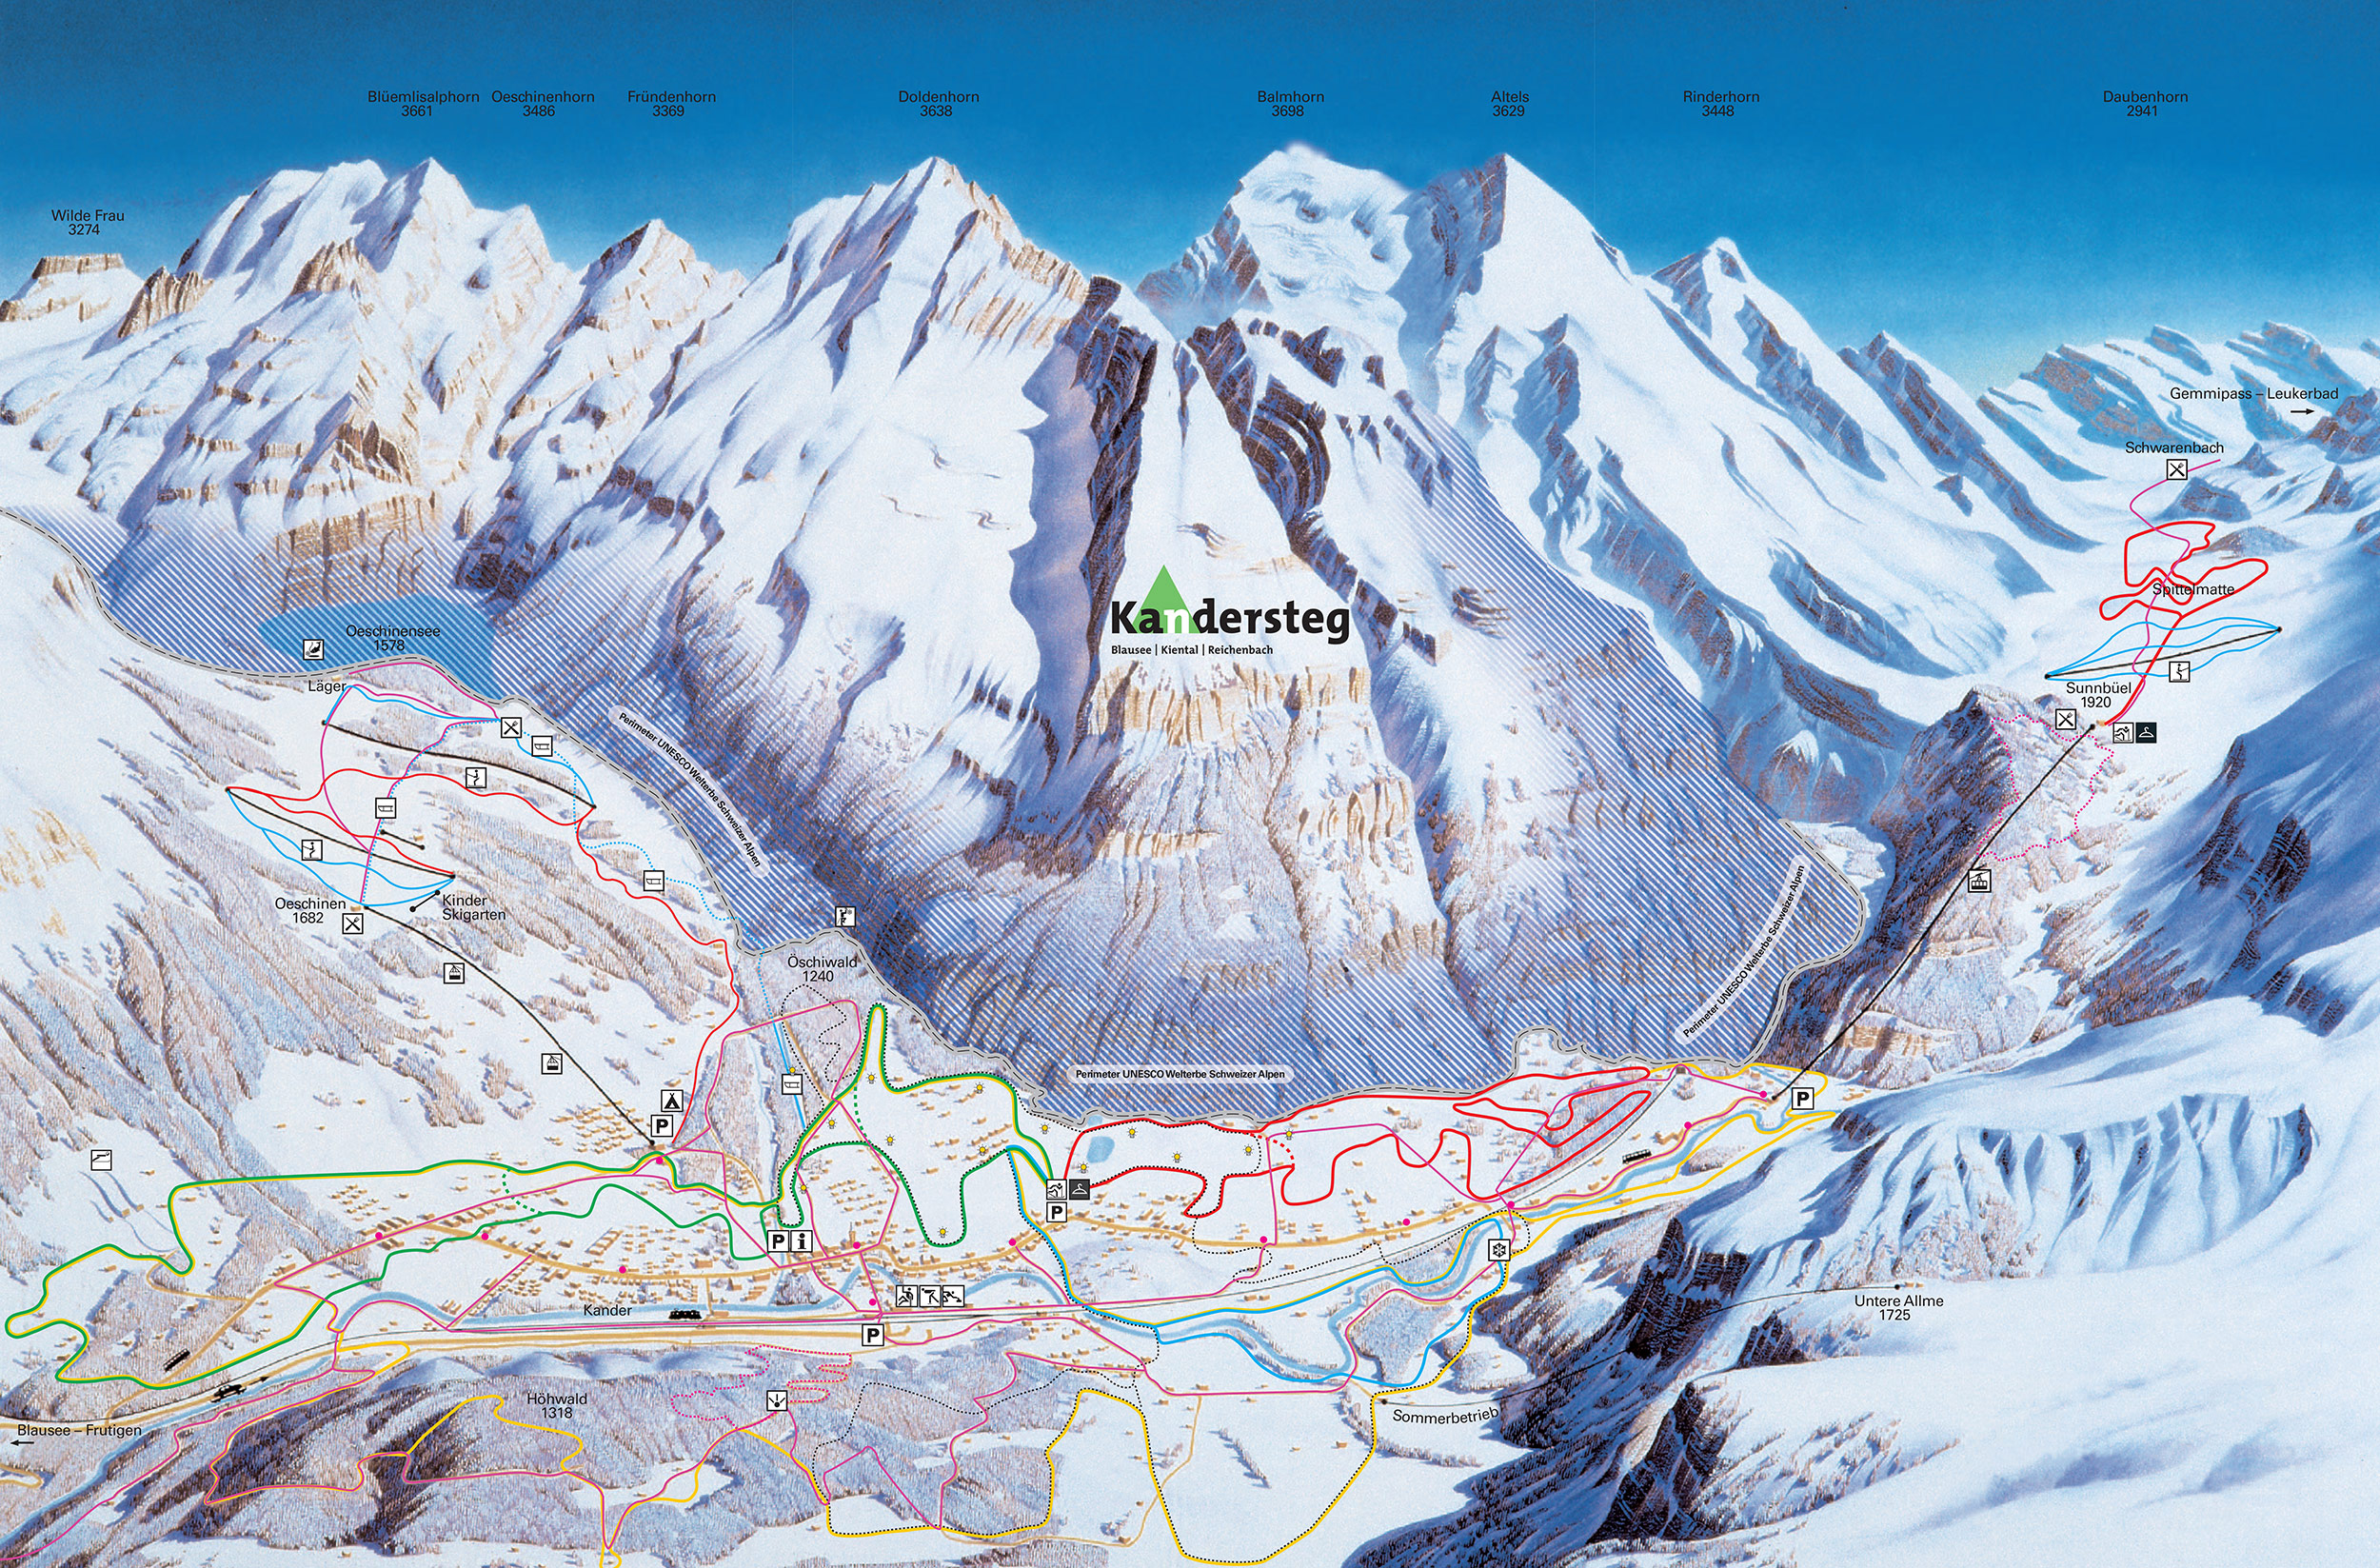 Piste Map Of Kandersteg